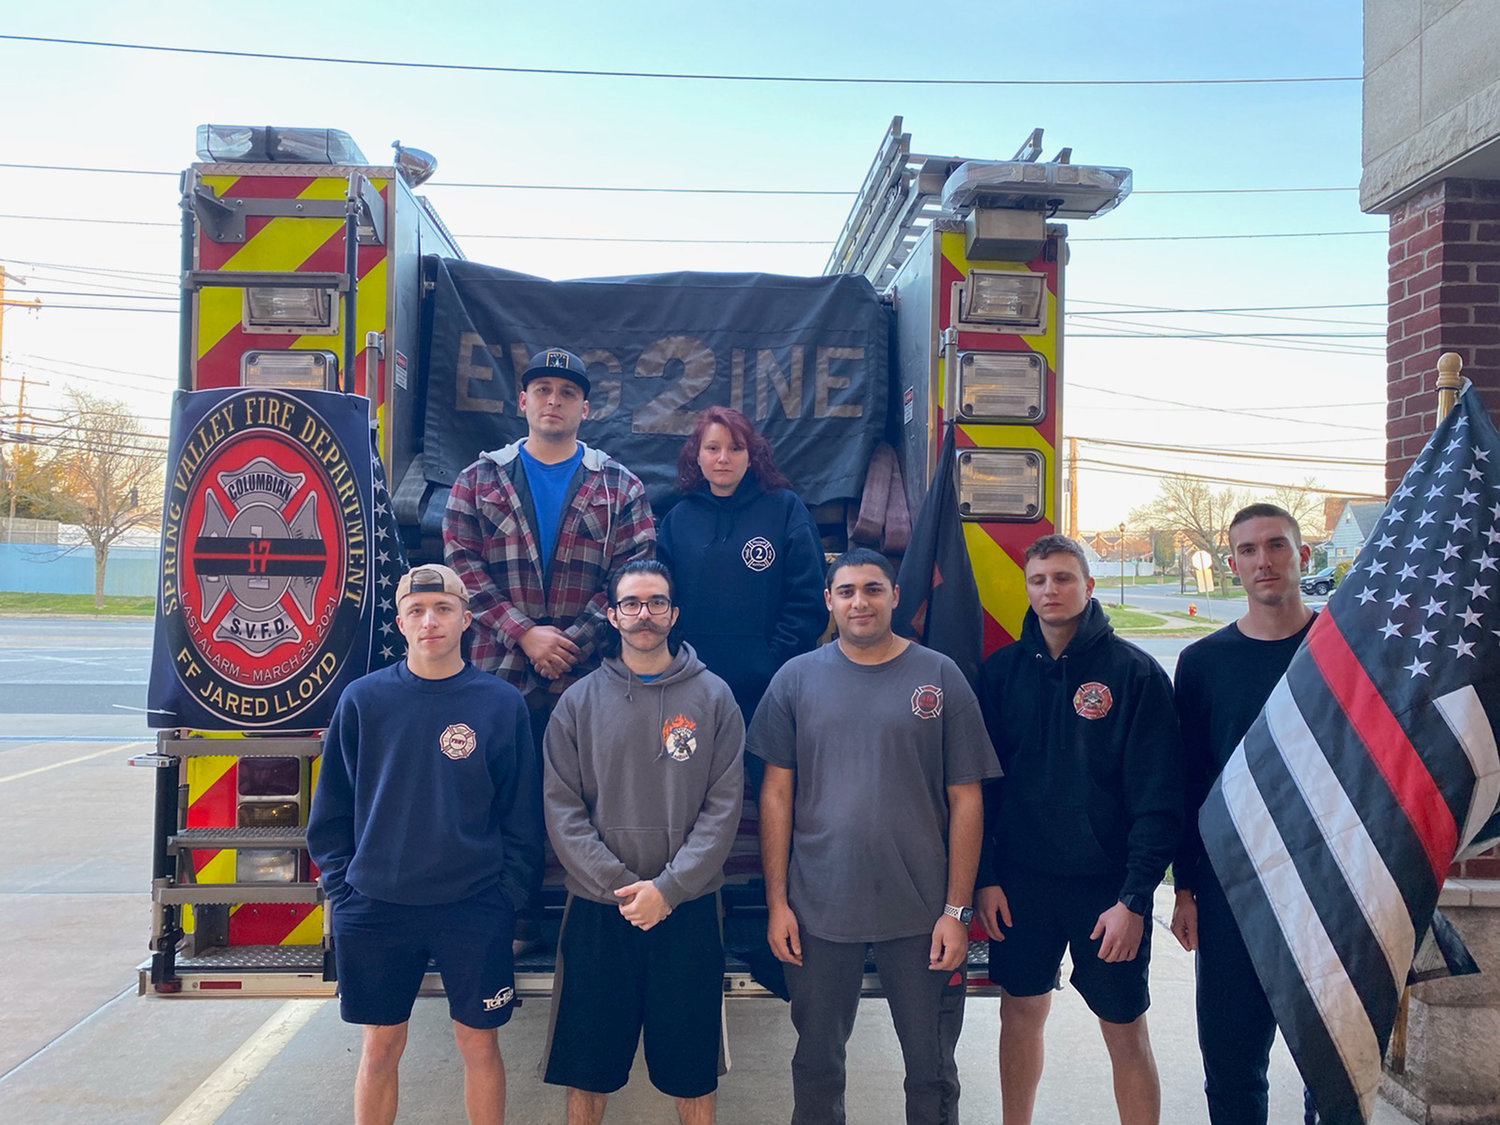 Members of Wantagh Fire Department Station #2 embarked on a one-mile run in memory of Firefighter Jared Lloyd on March 30.